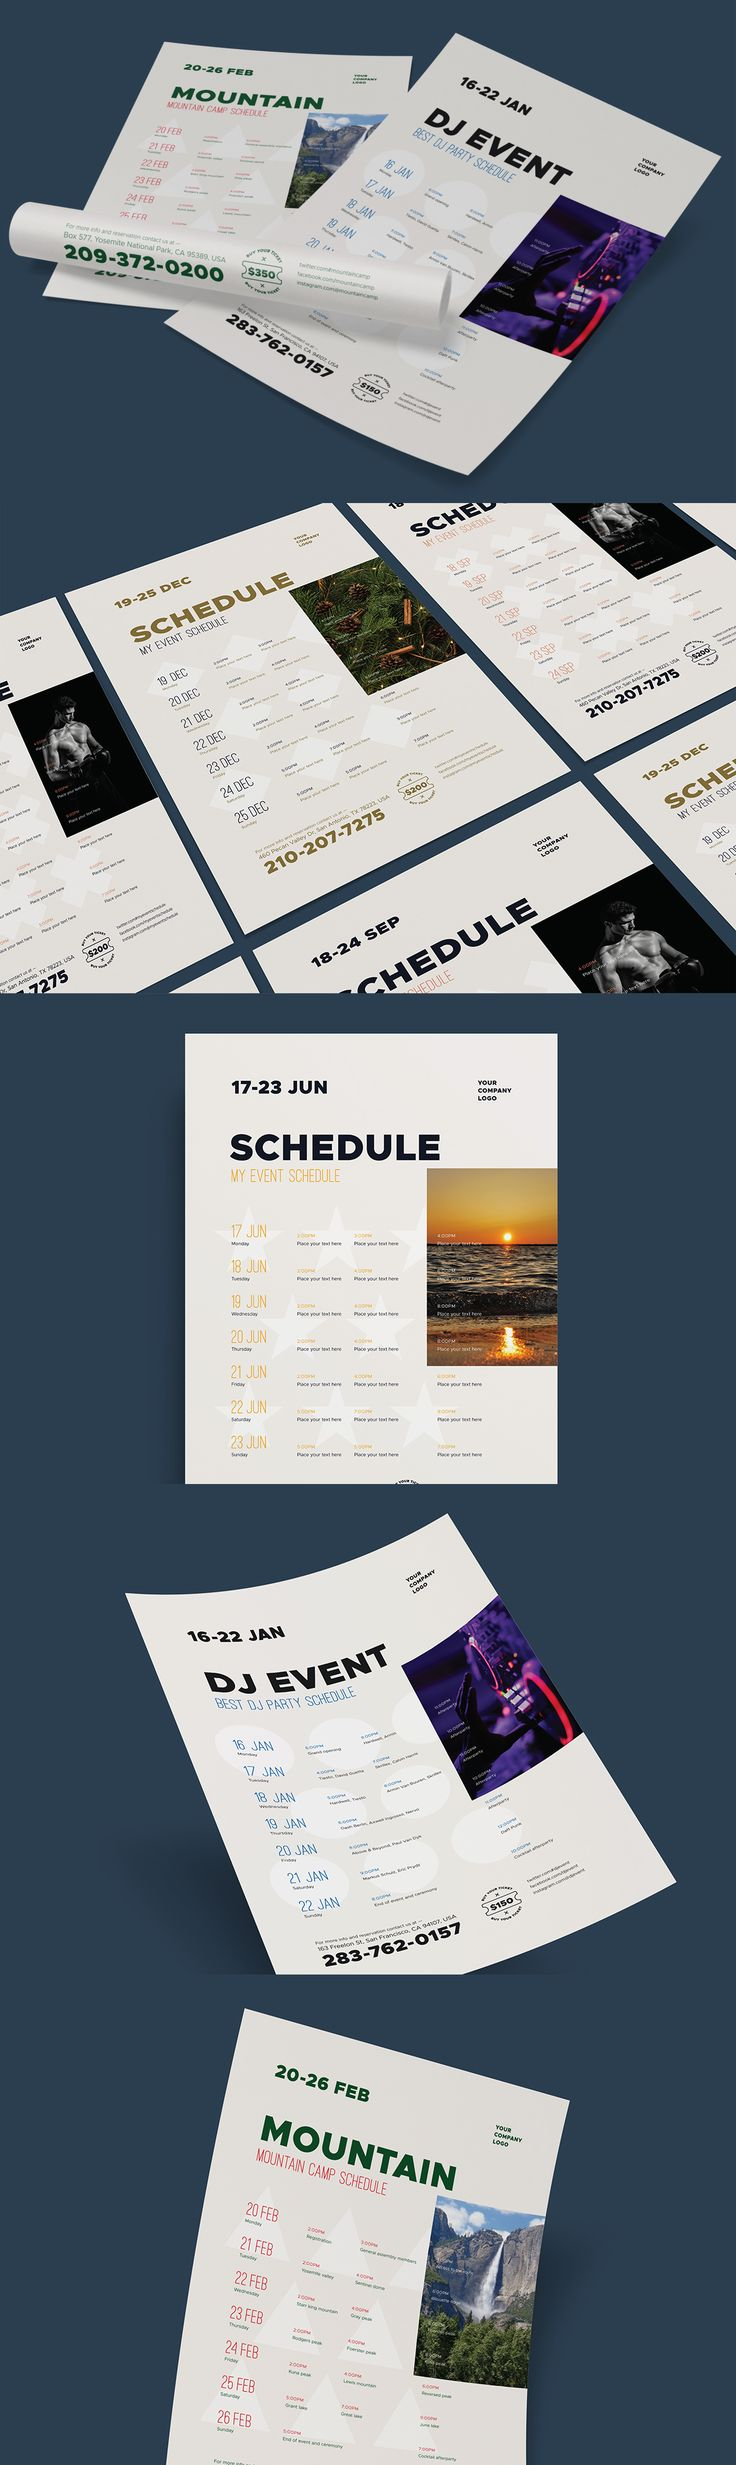 Schedule Event Poster Template AI, EPS